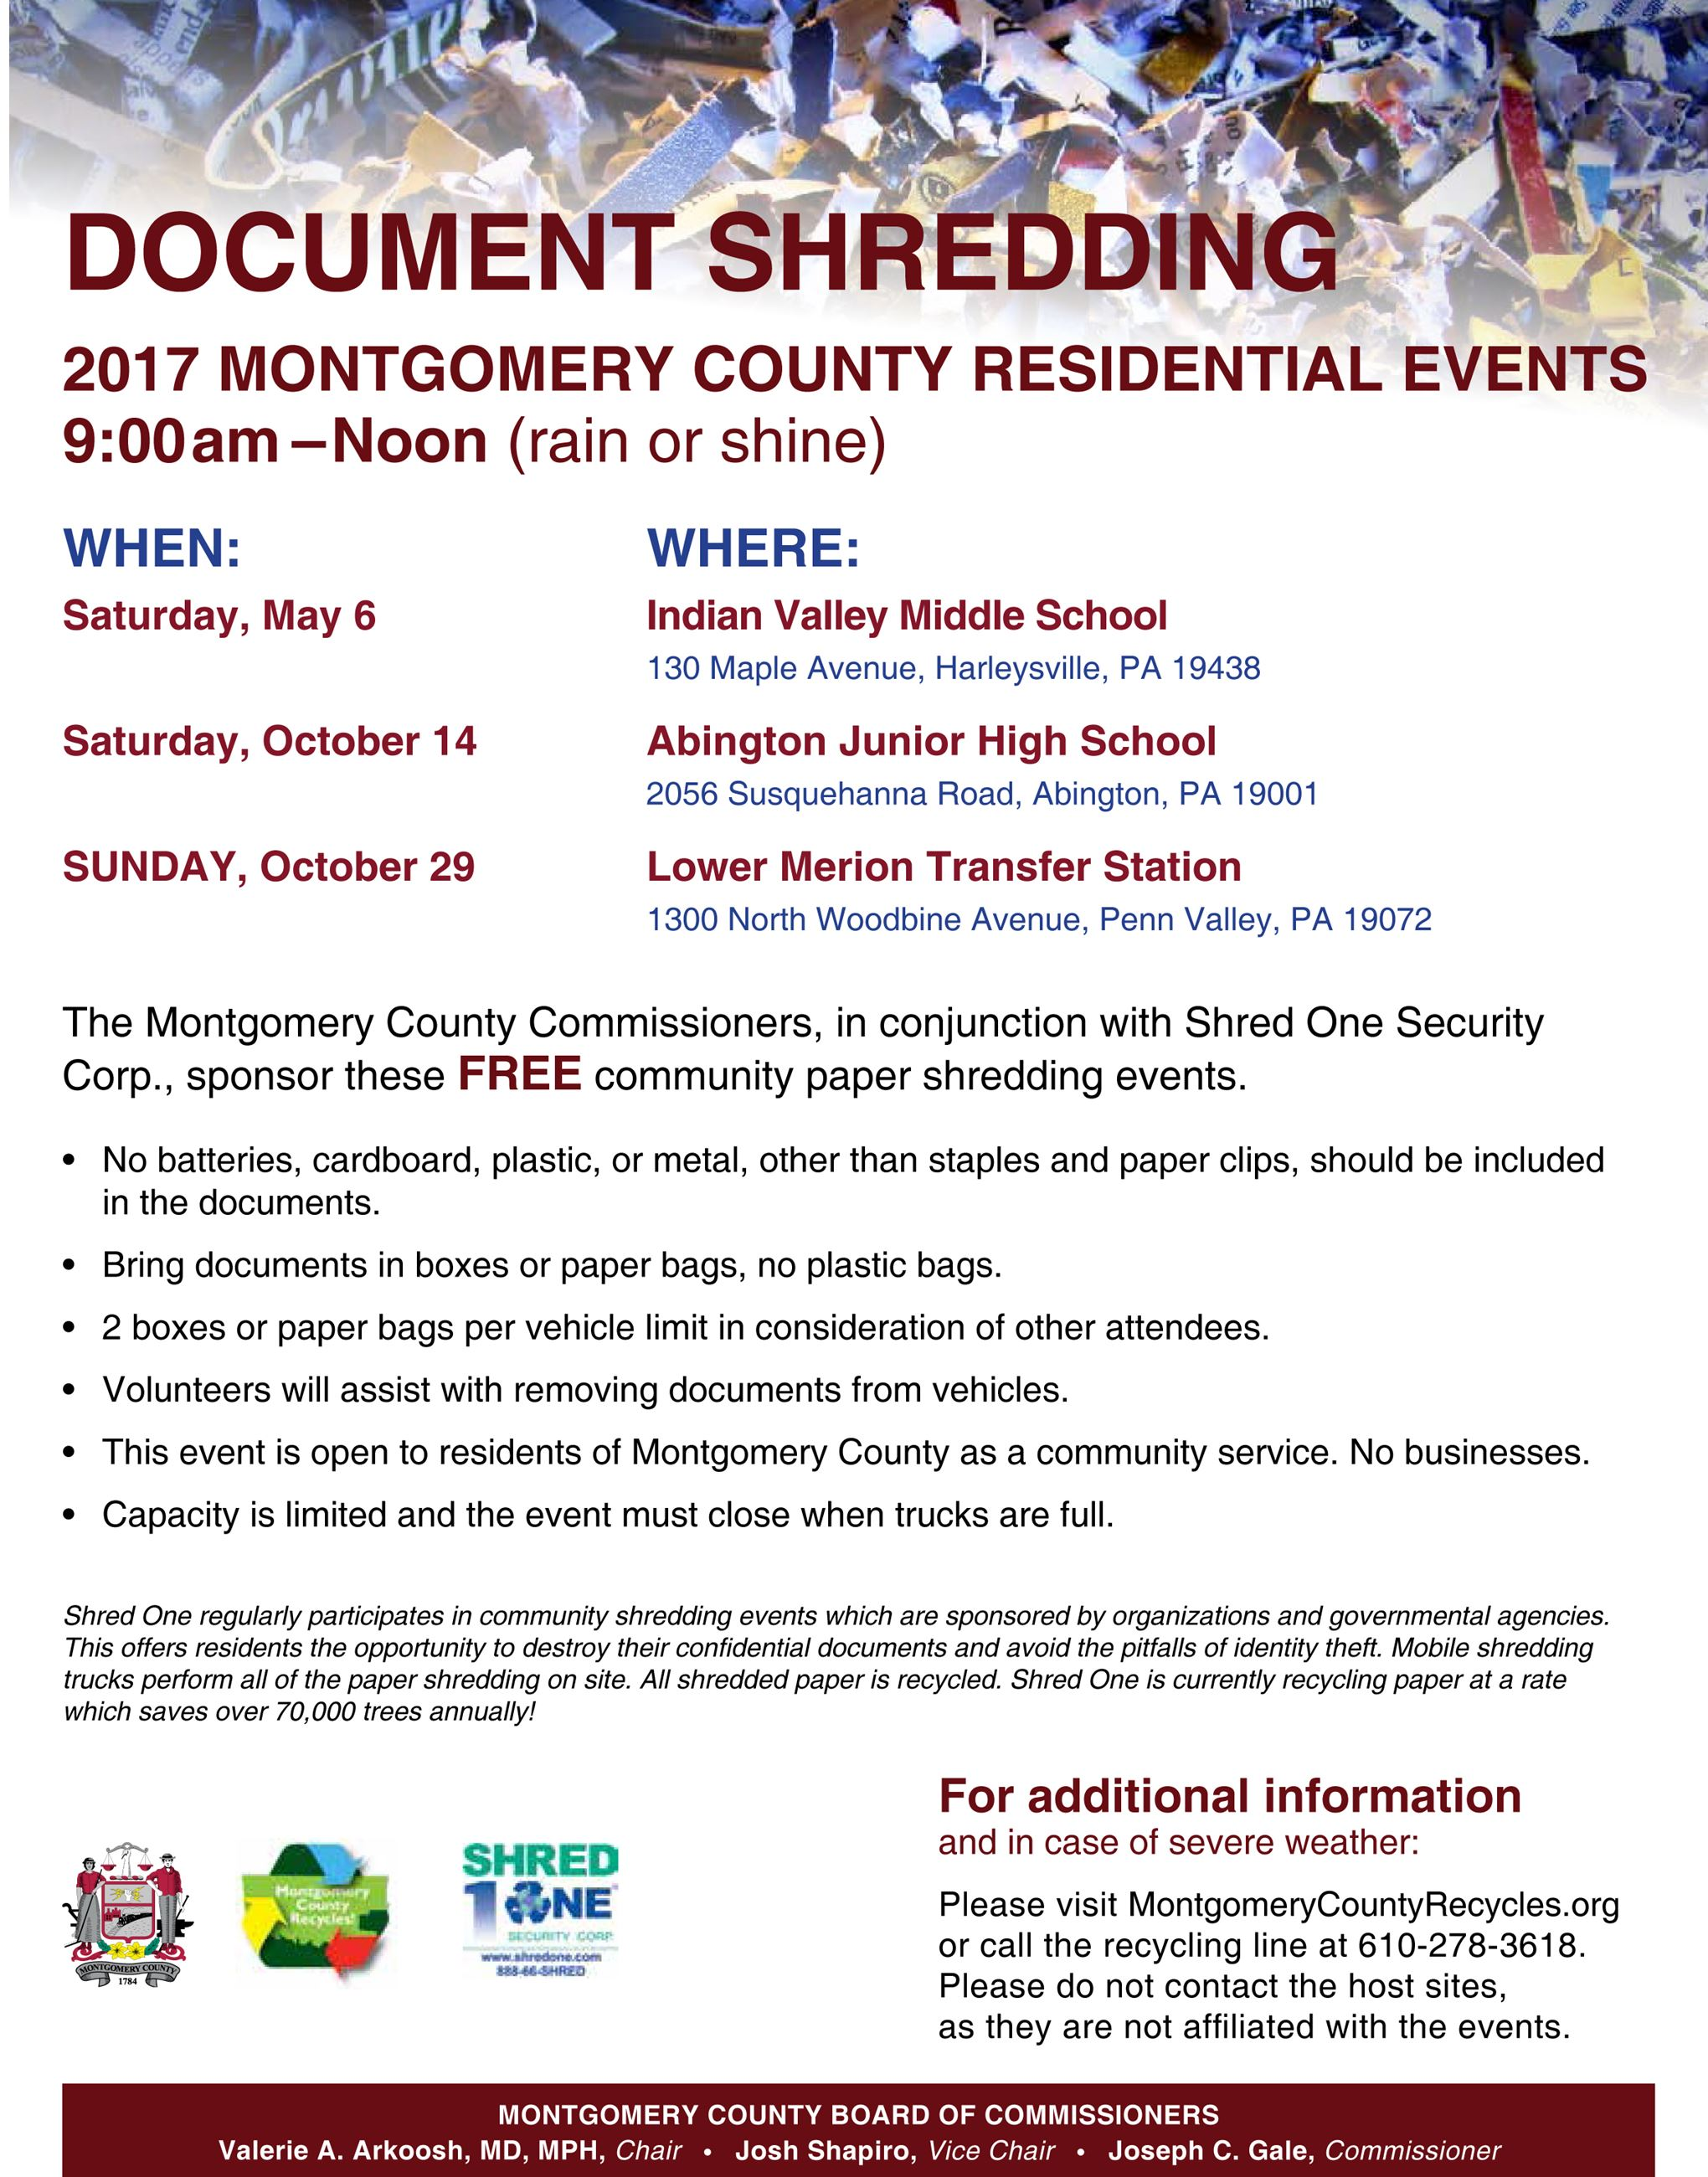 Document Shredding-Flyer_Jan2017_WEB